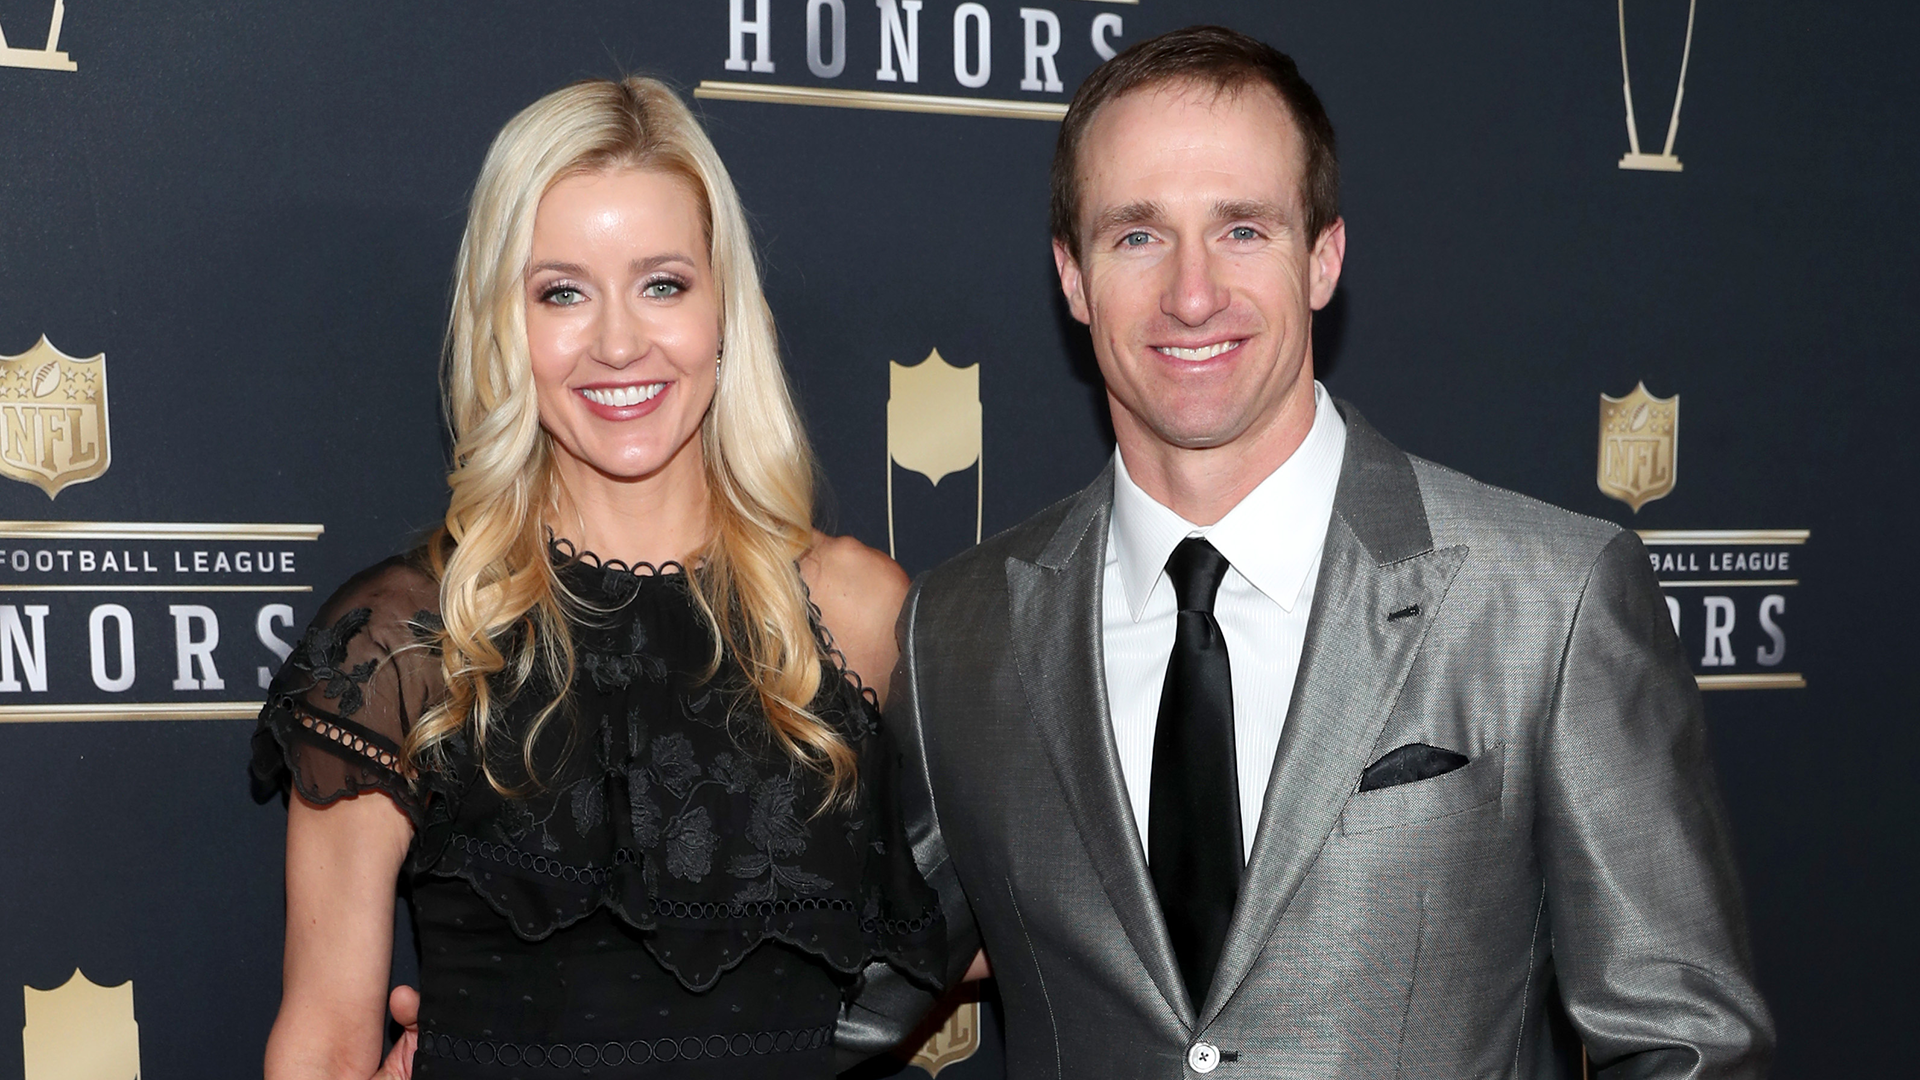 Photo of Drew Brees' wife Brittany says family received death threats over protesting, flag comments